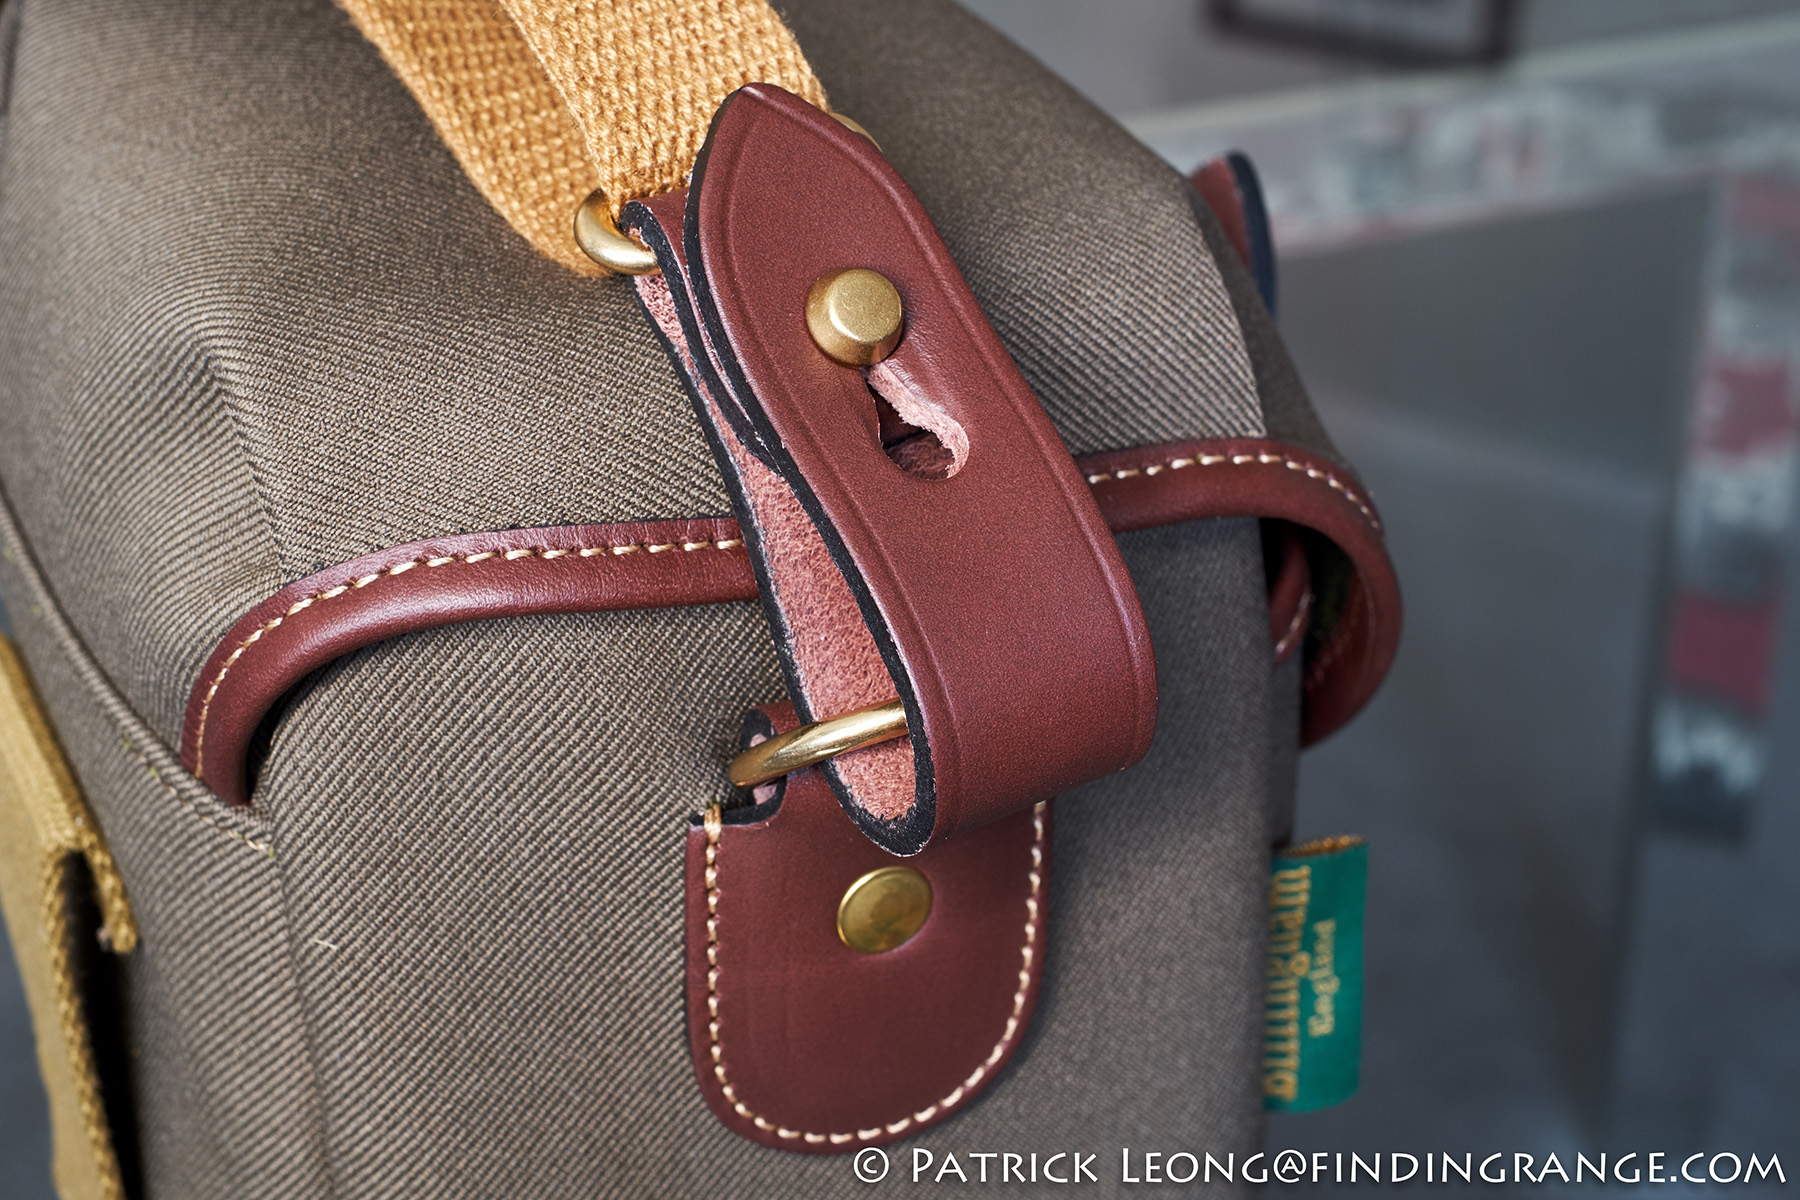 Billingham 72 Camera Bag Review Digital Burgundy Canvas Chocolate Leather The Rest Of My Stuff Also Since Is Compact There A Wide Belt Loop On Back It For Those Who Prefer Different Method Carrying